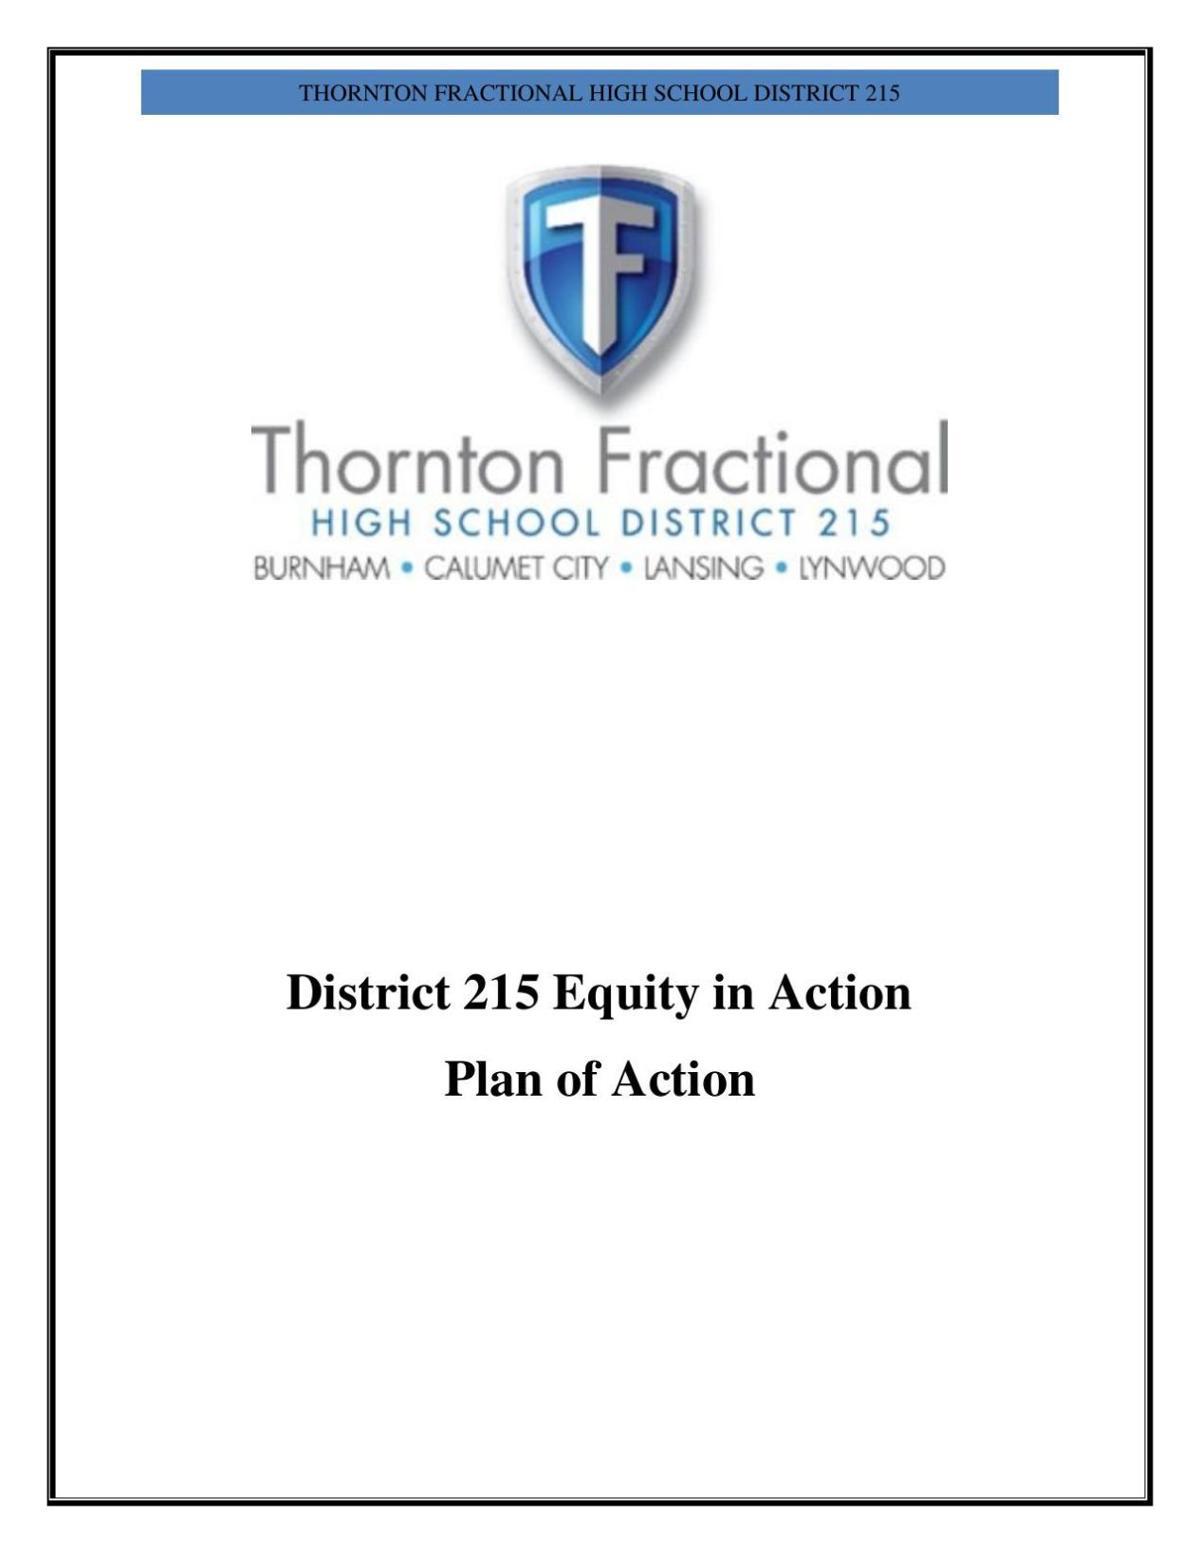 Thornton Fractional District 215 Equity Plan of Action